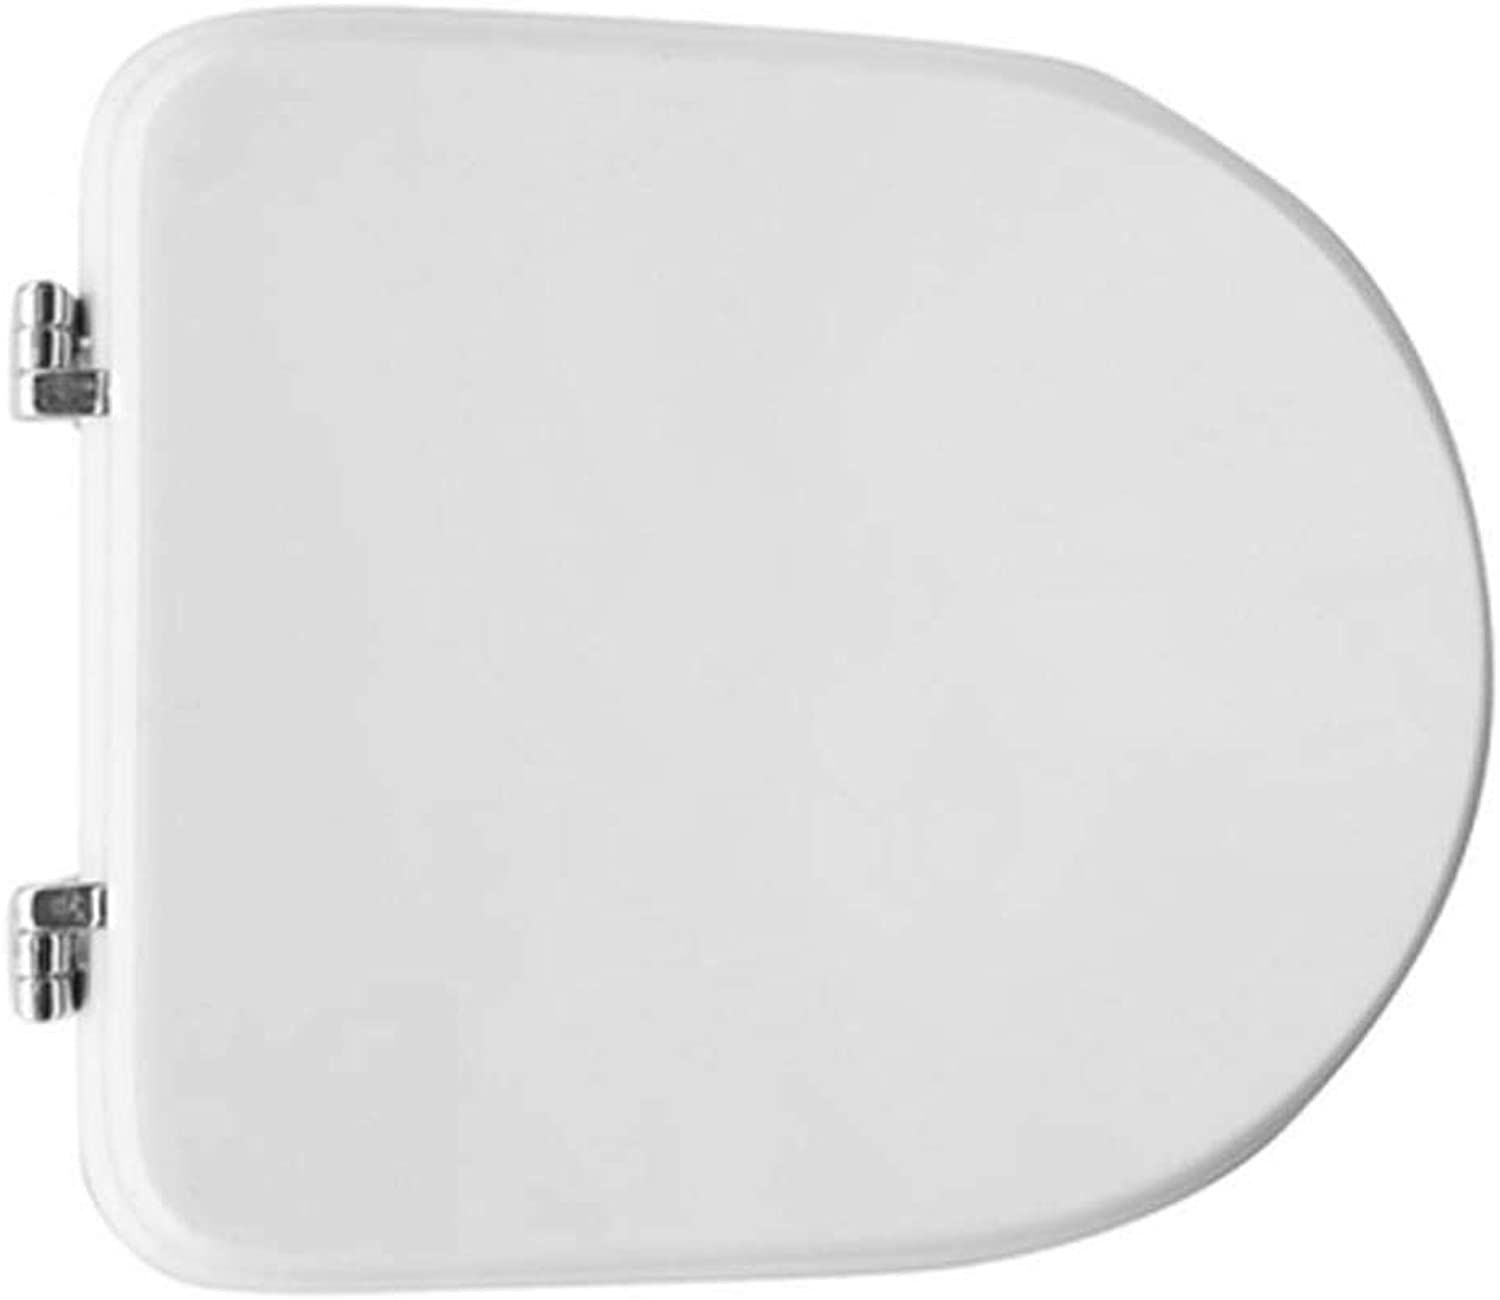 Dianhydro Toilet Seat Cover bluee MINI-Cloud Vase, White